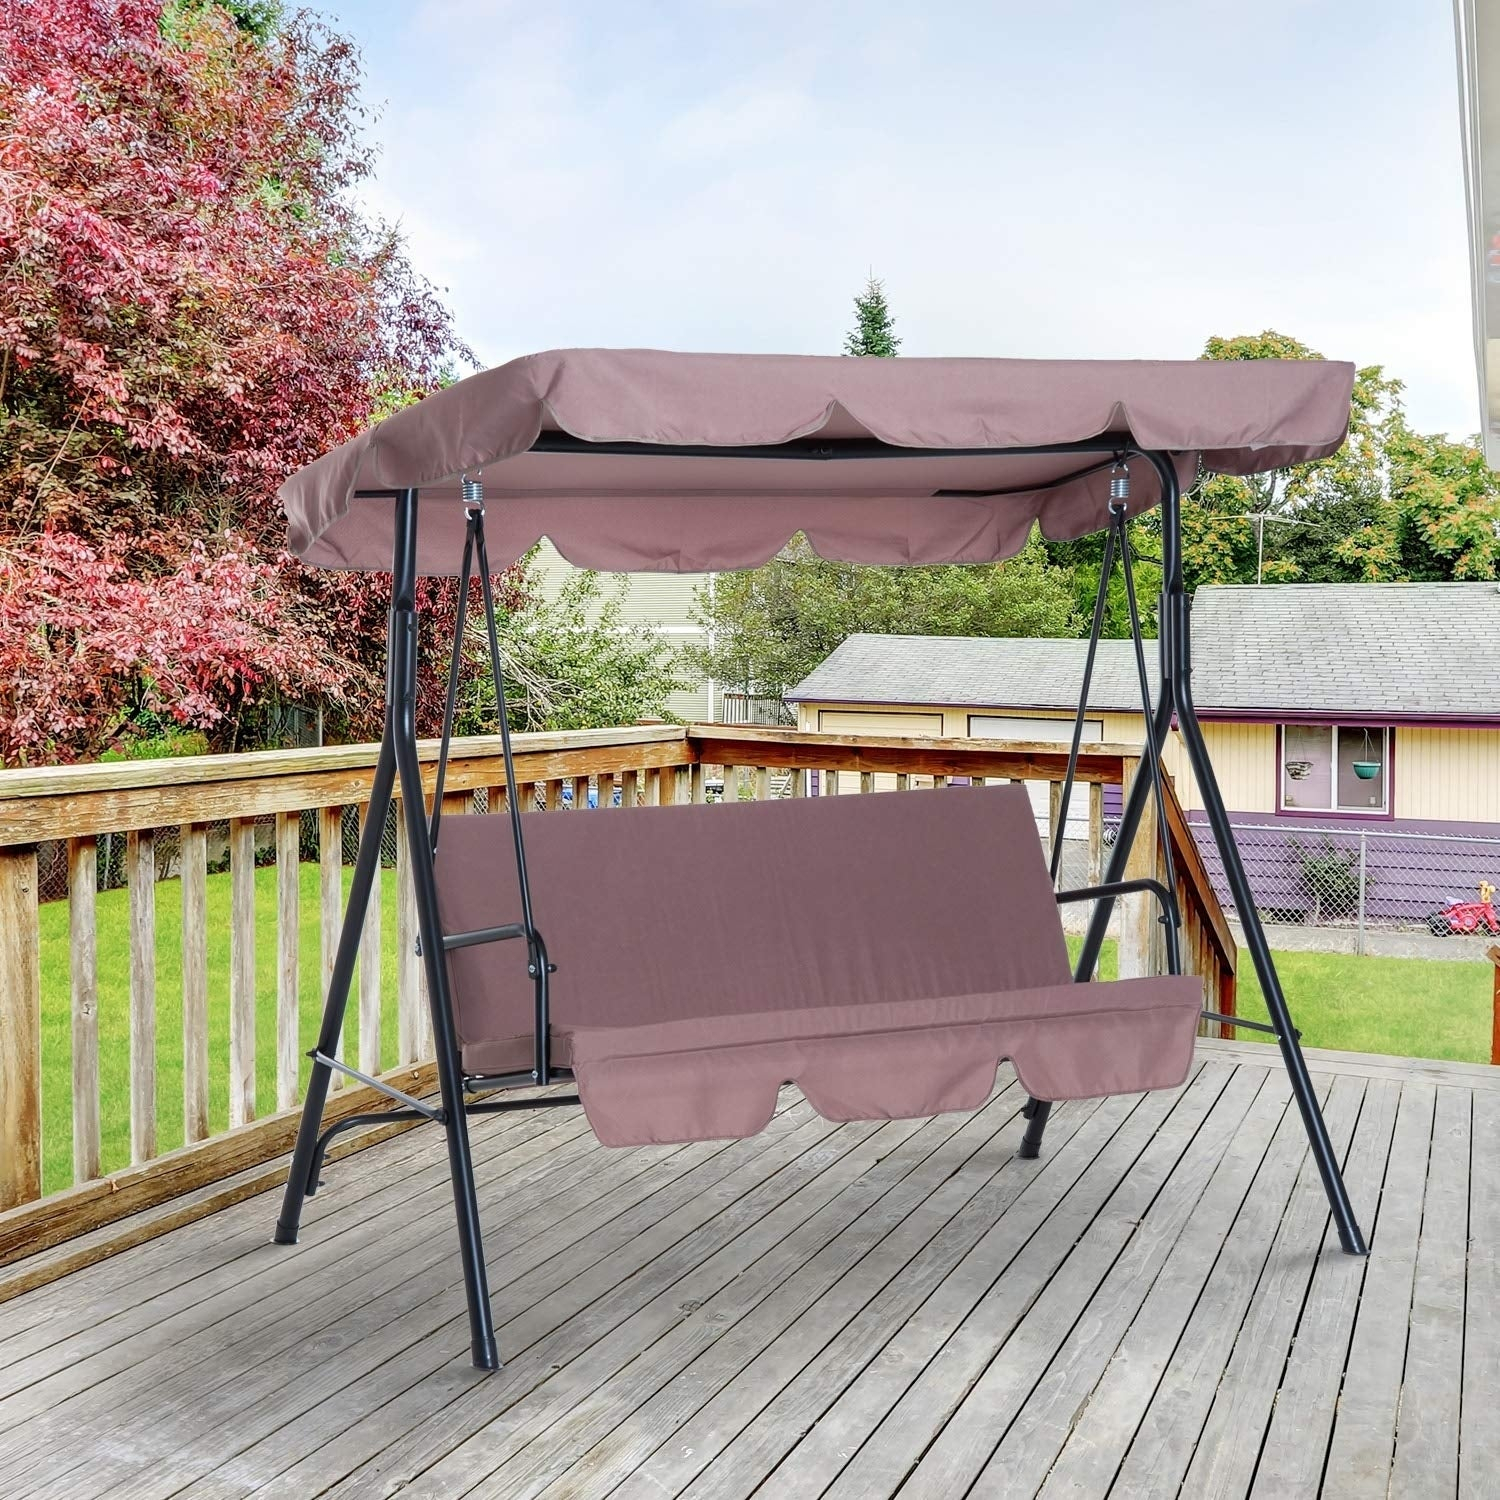 Outsunny 3 Person Steel Fabric Outdoor Porch Swing Canopy With Stand – Brown Throughout 3 Person Brown Steel Outdoor Swings (View 25 of 25)